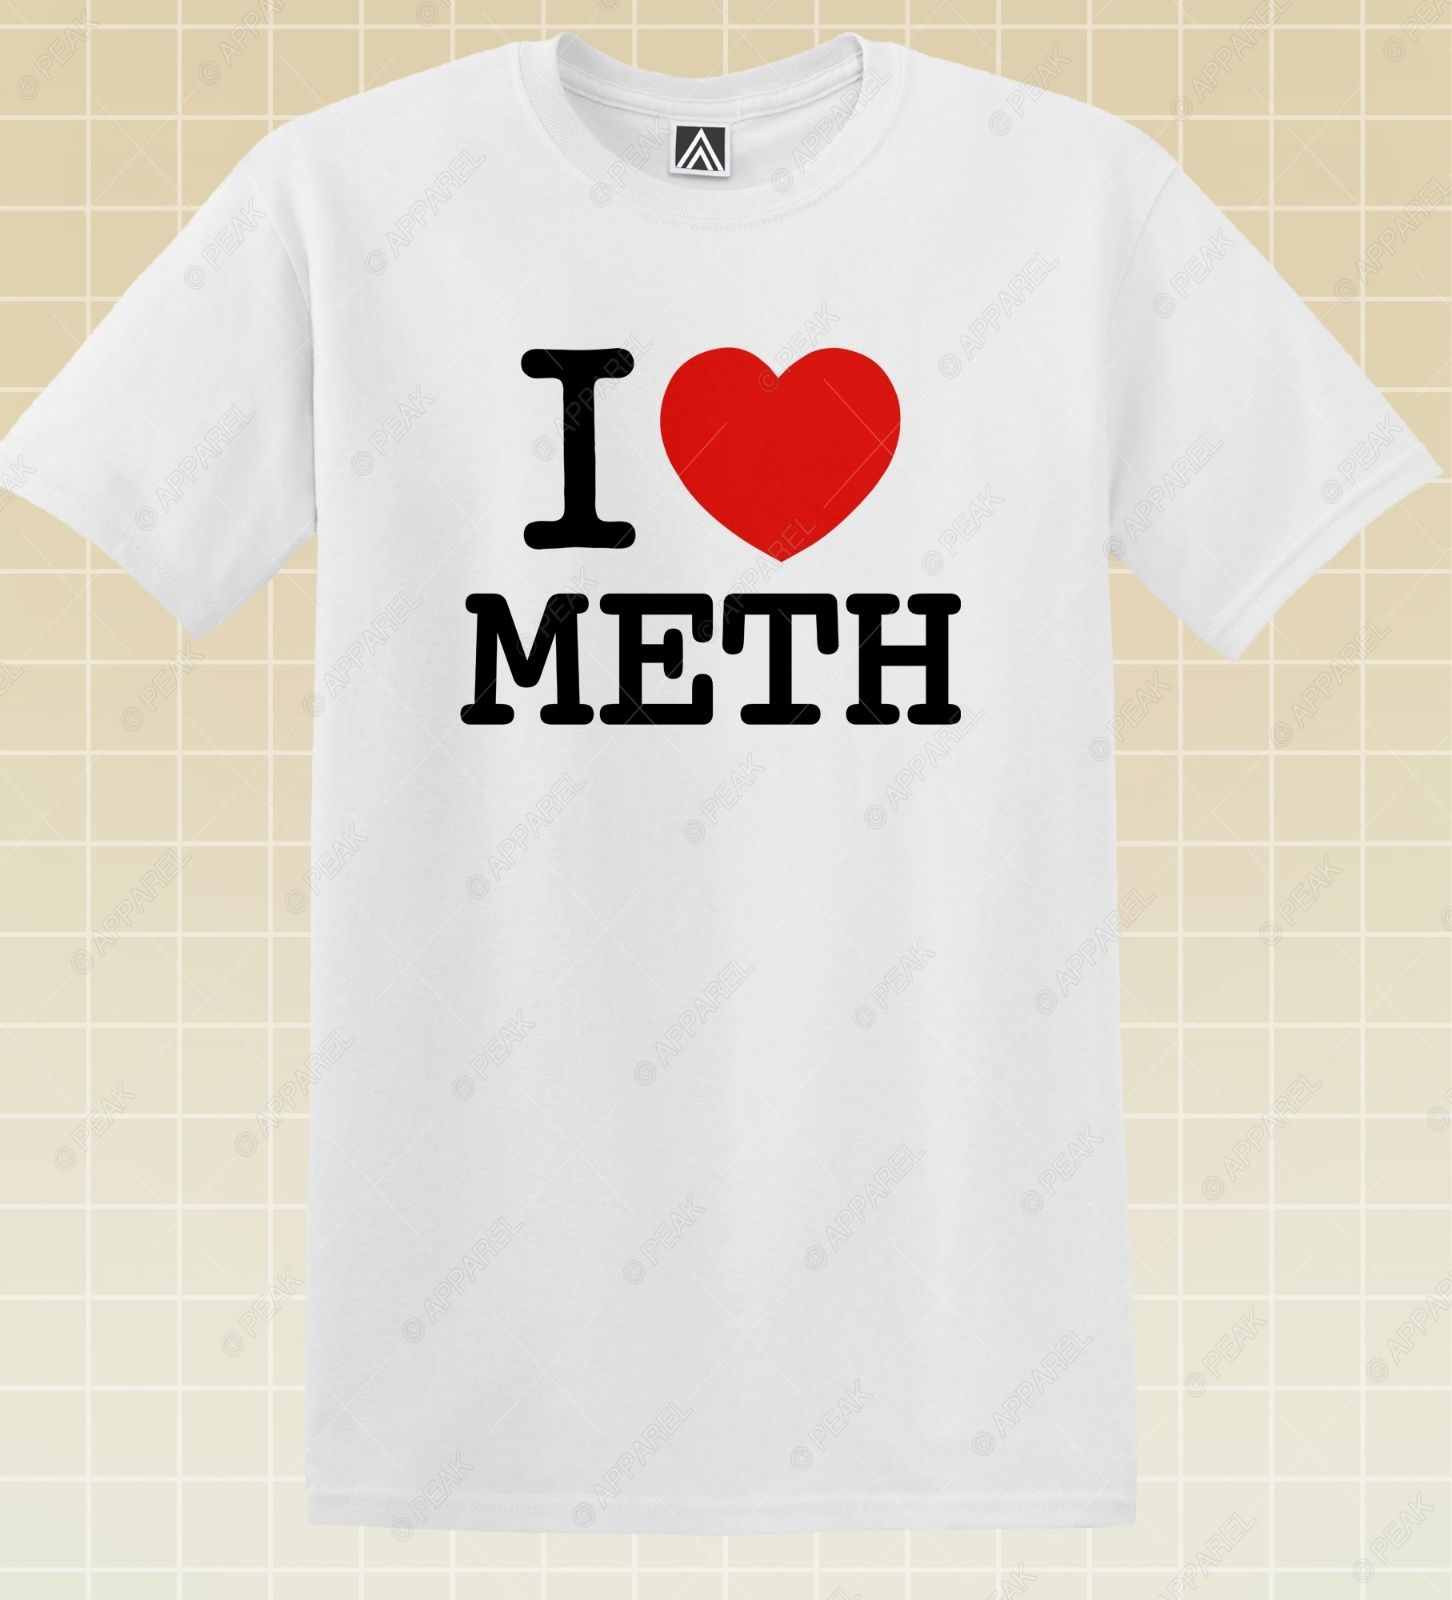 <font><b>I</b></font> <font><b>Love</b></font> Meth T-<font><b>shirt</b></font> <font><b>NY</b></font> Funny Drugs Tee LSD High Crystals Novelty Party Top custom printed tshirt,hip hop funny tee,2019 hot tees image